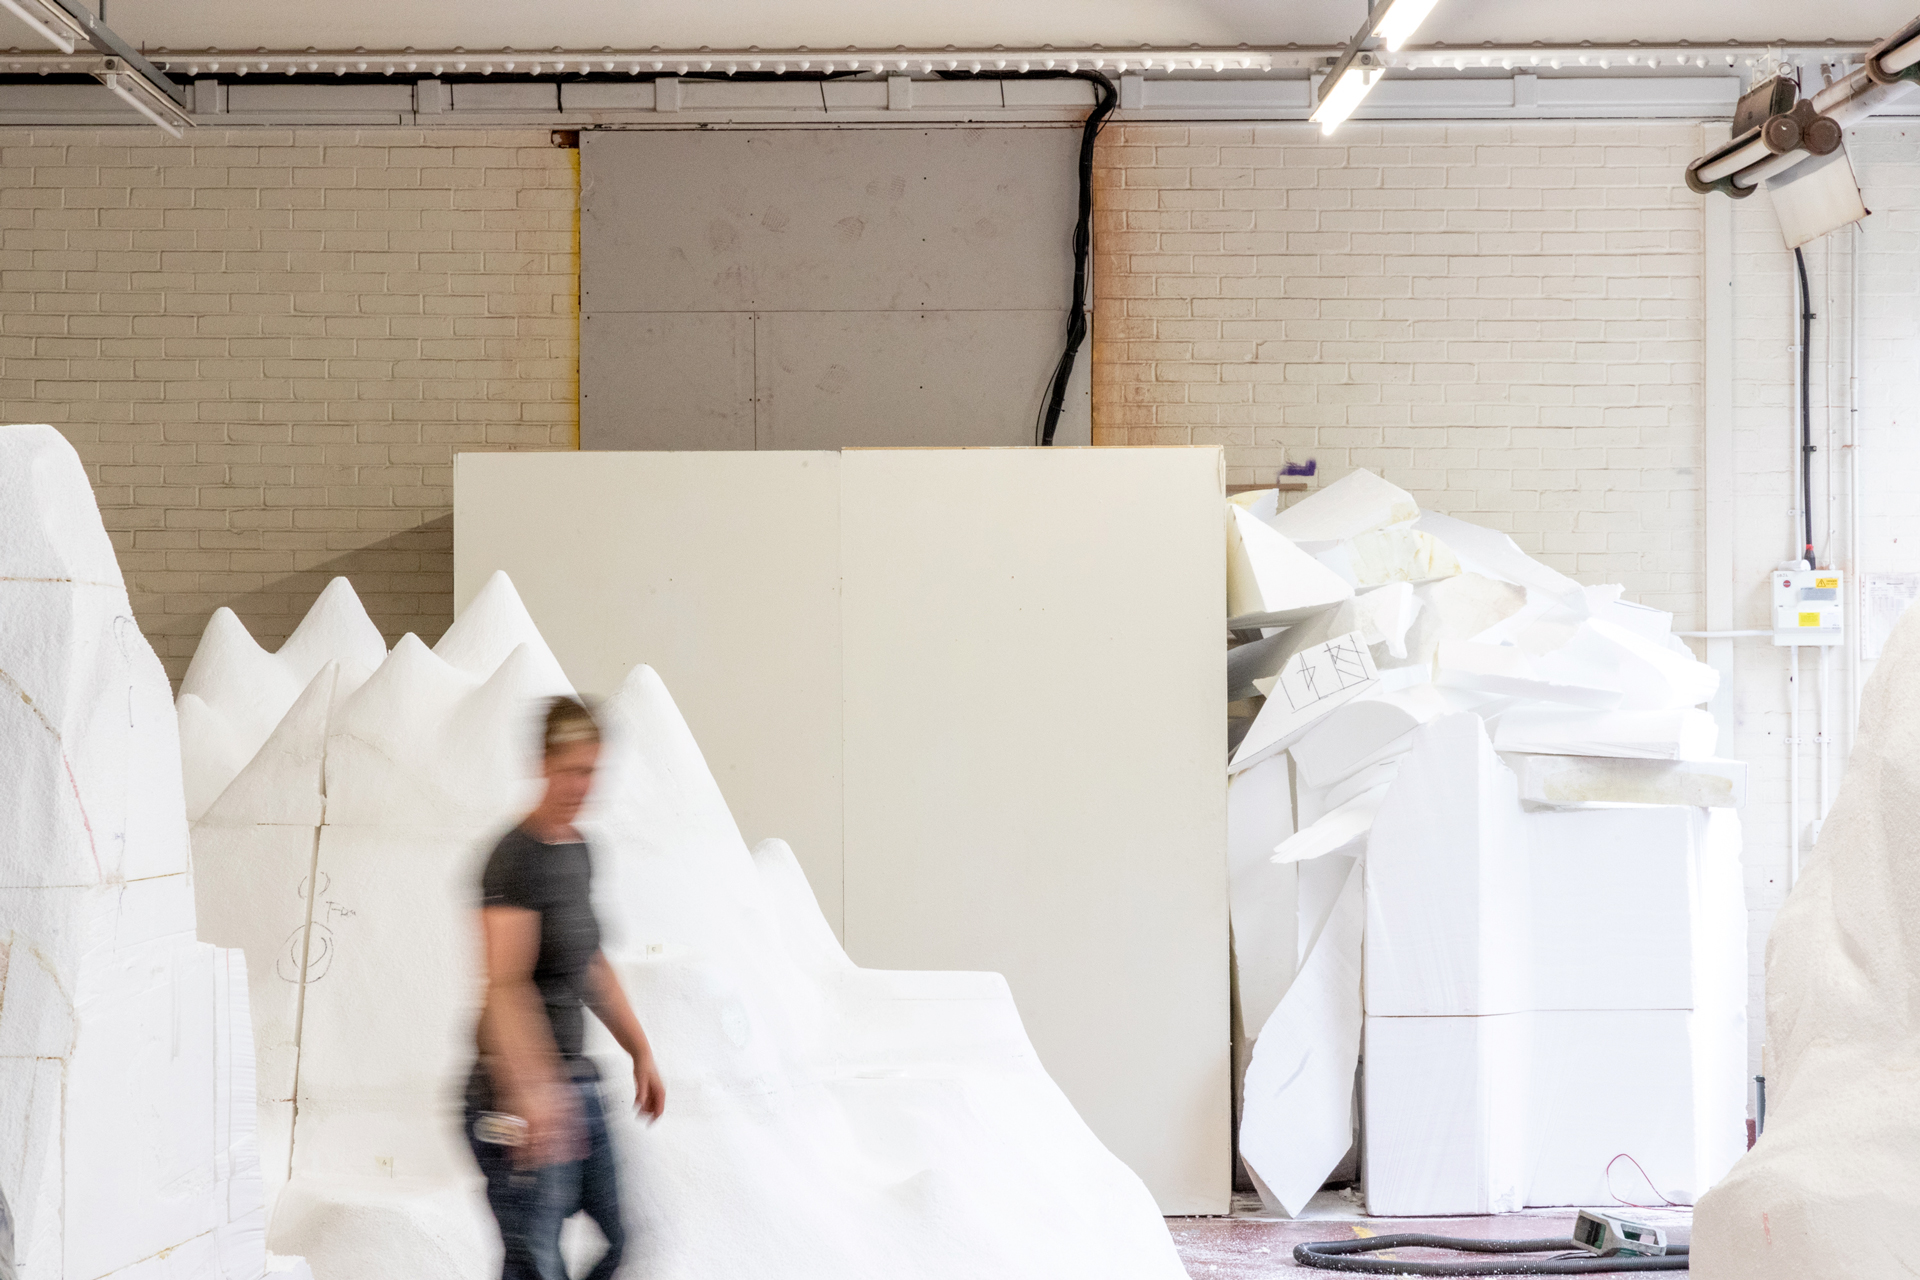 The Royal College of Art SoA Degree Show 2019 was an unmissable exhibition. Click to view how WFM helped support clients.